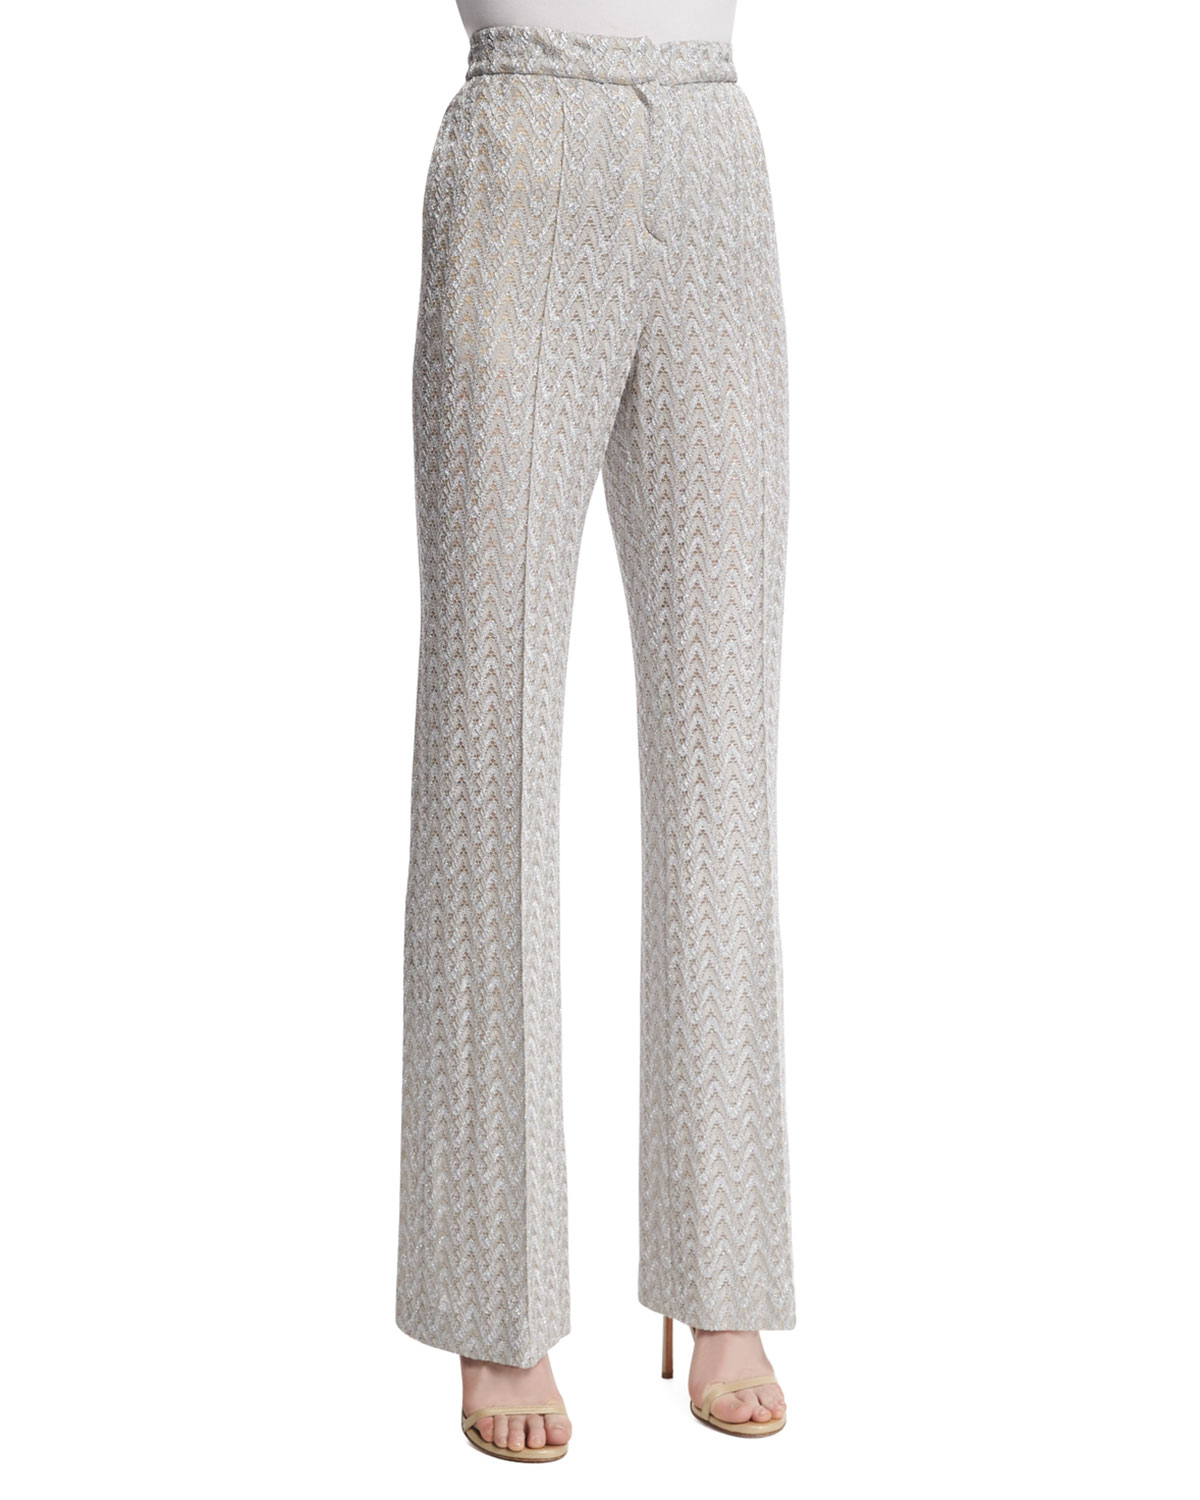 High-Waist Flare-Leg Pants, Silver Colorway